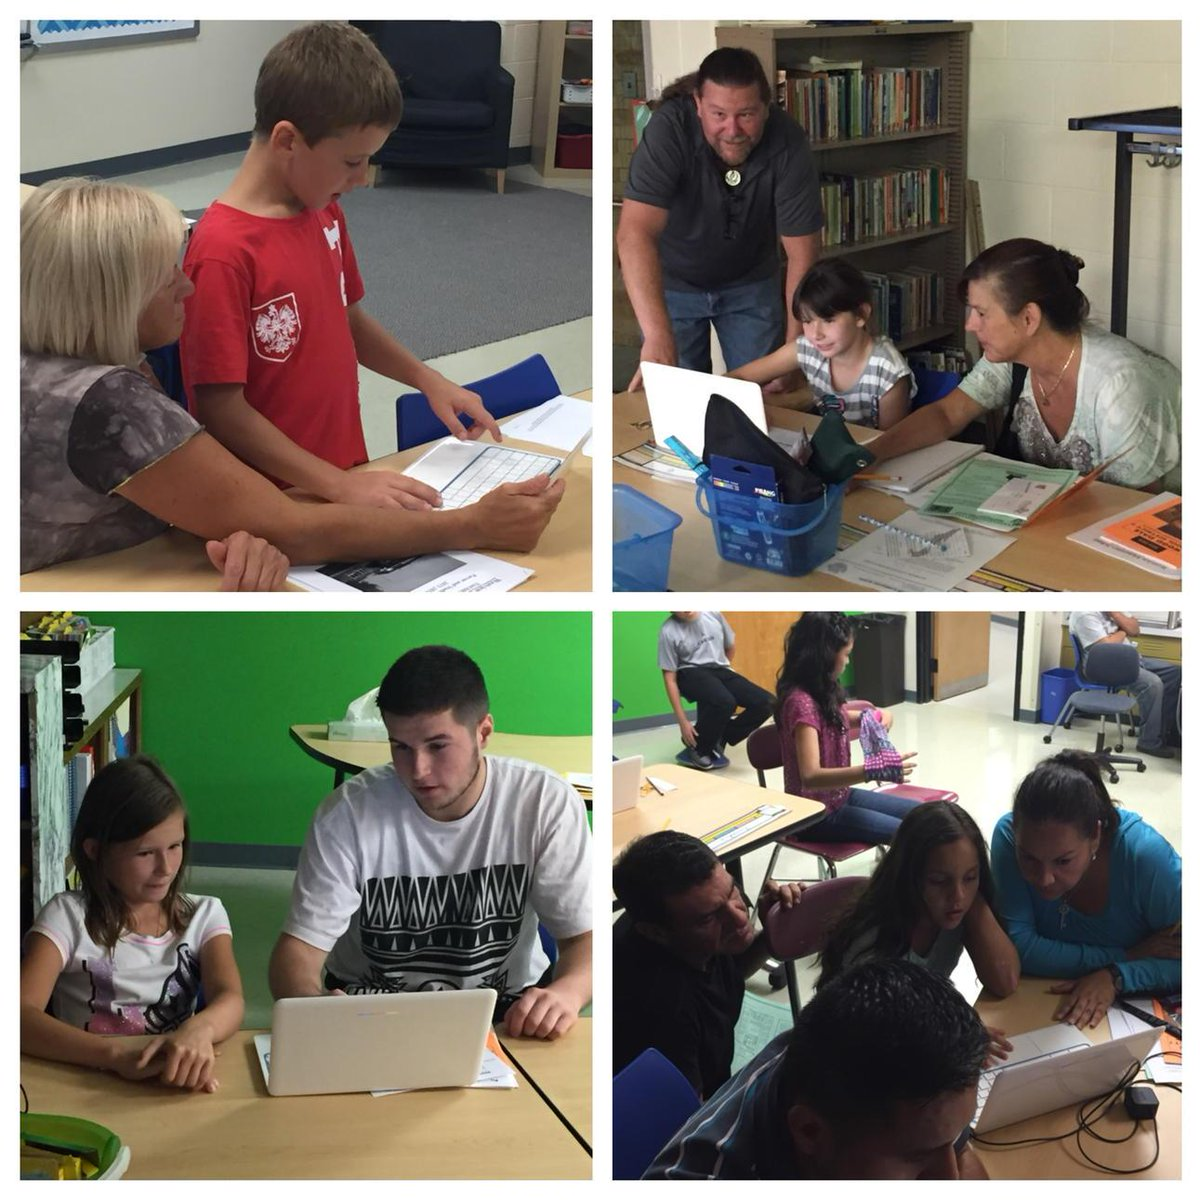 What a great chance for parents to learn how their child learns in 4th grade! #wdsd7 http://t.co/uh11hcuom2